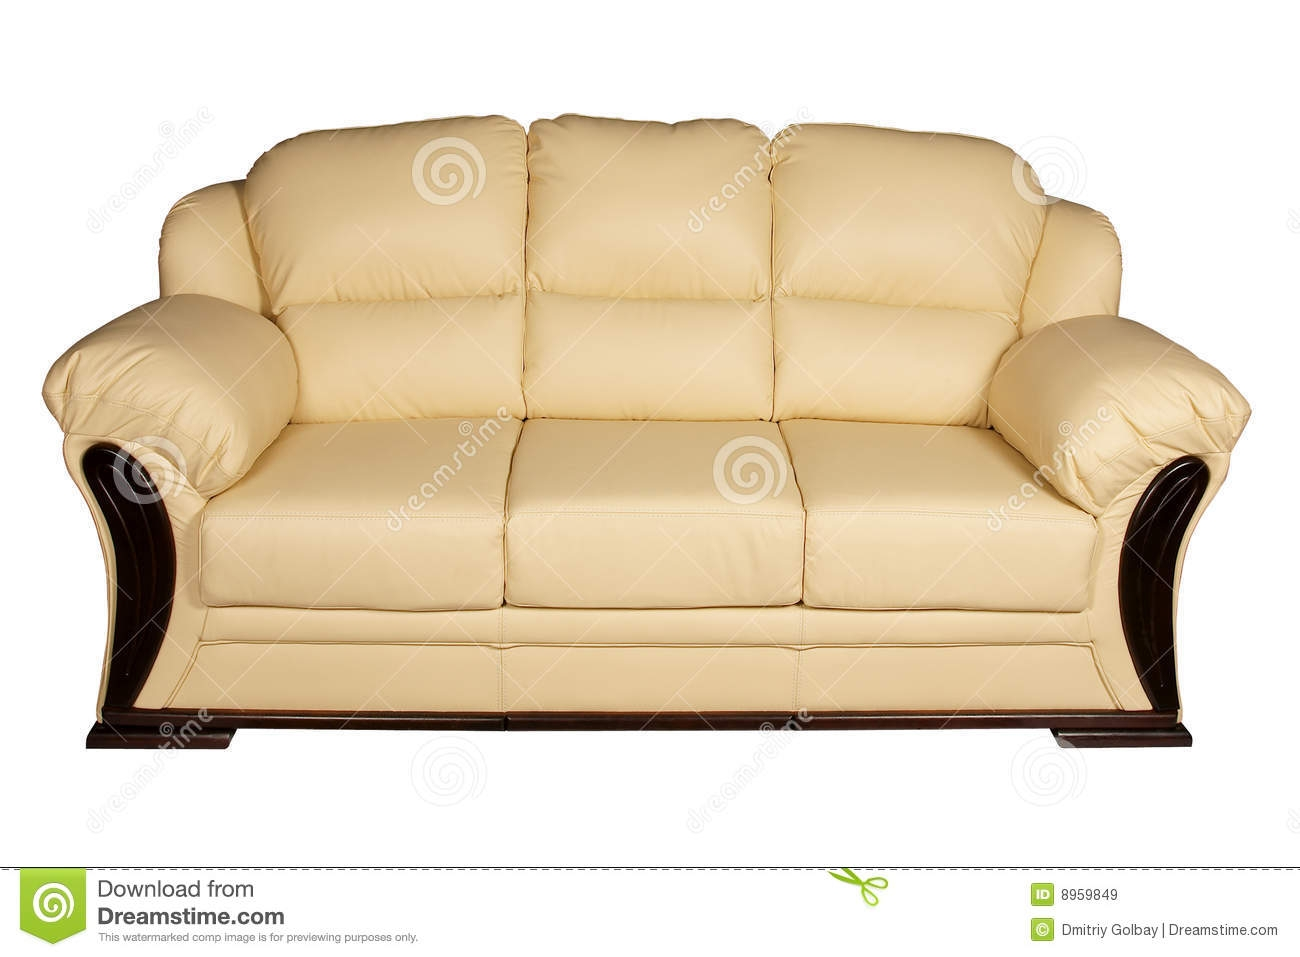 cream leather sofa 15 best ideas cream colored sofas sofa ideas 13612 | sofas center cream colored leather sofa alluring jpg home throughout cream colored sofas